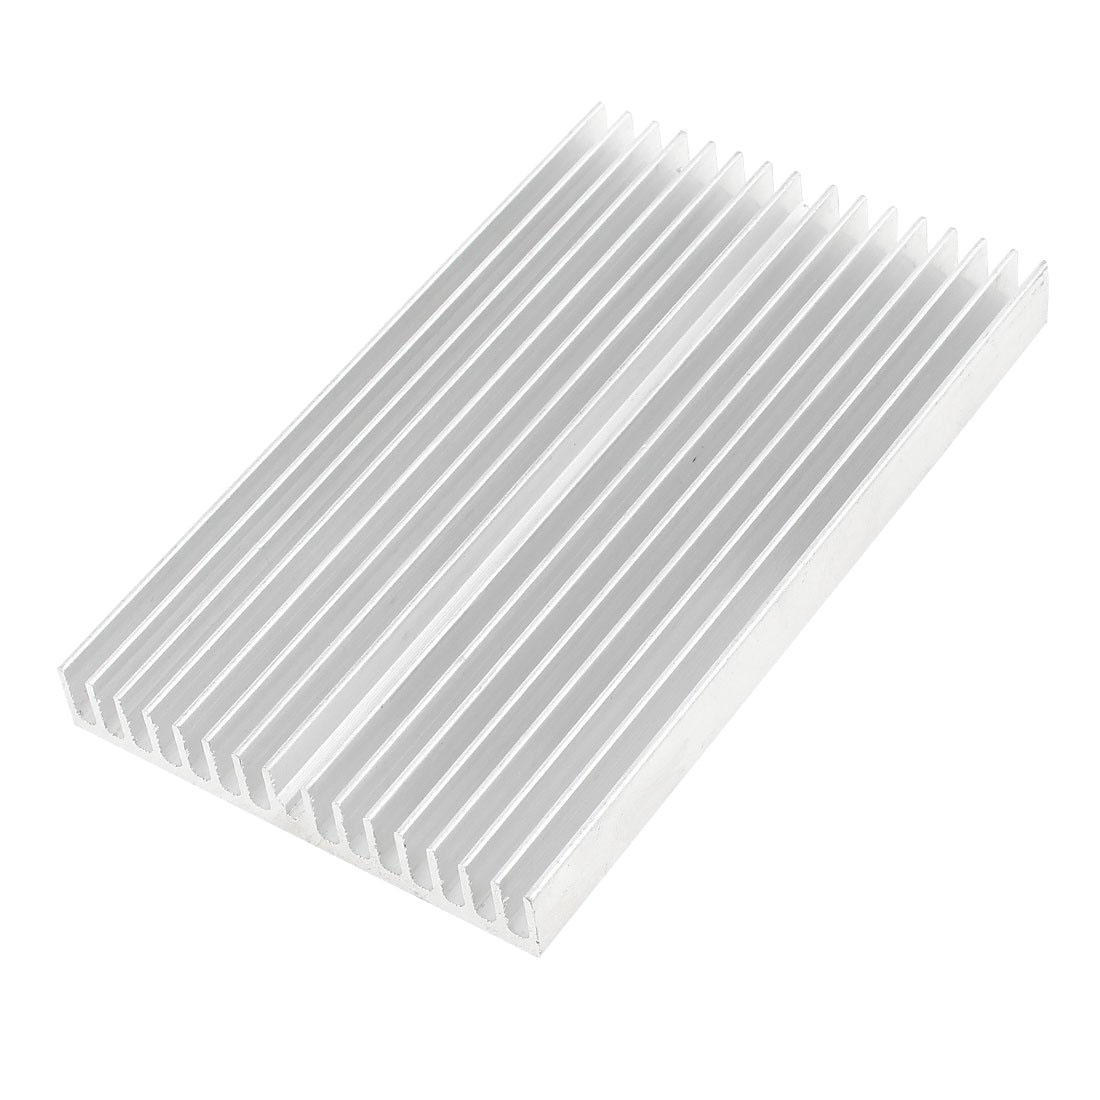 Silver Tone Aluminum Cooler Radiator Heat Sink Heatsink 100x60x10mm 2 x b ddr ddr2 ram memory cooler heat spreader heatsink z09 drop ship